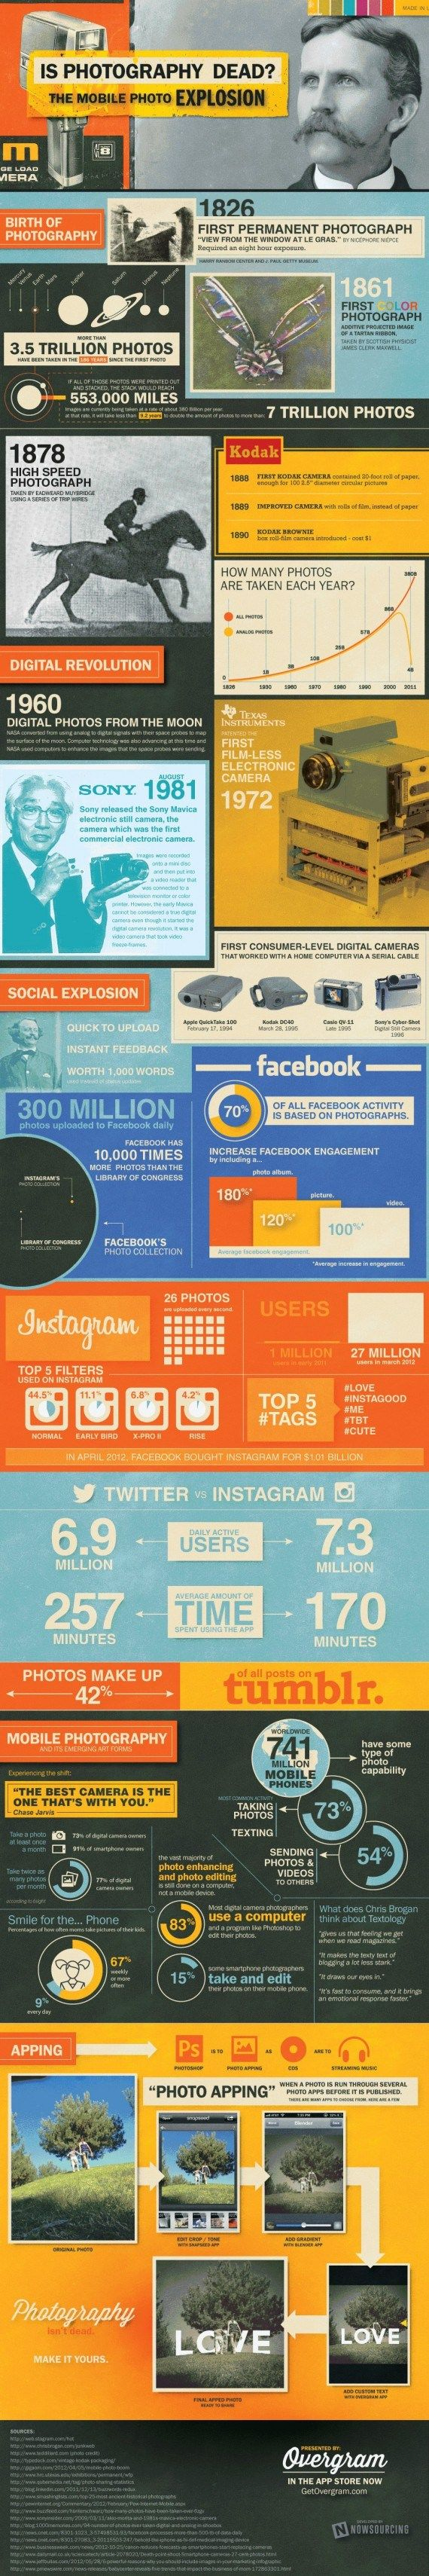 Awesome Infographic on Photography (Traditional) being replaced by digital #photography #imaging #content            \\\\\\